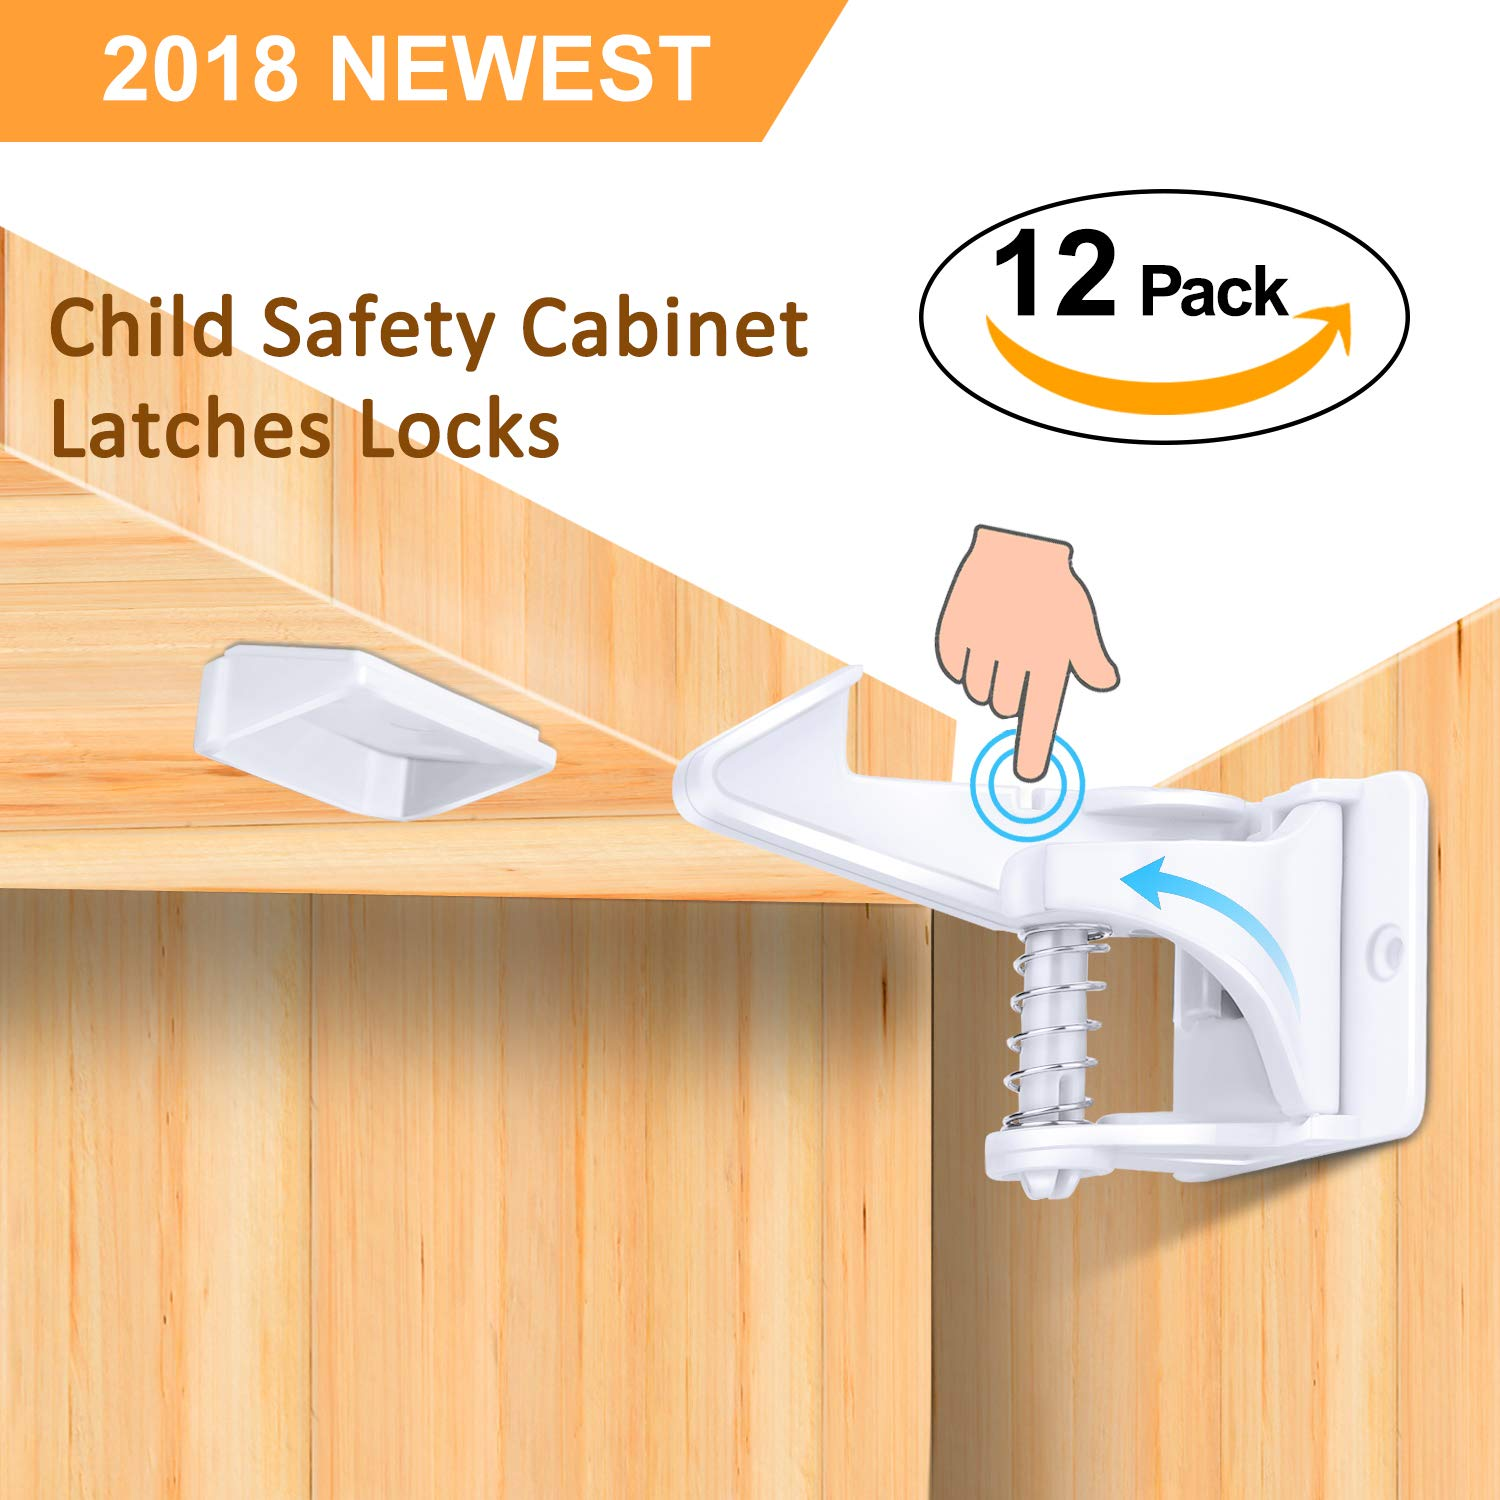 Child Safety Cabinet Locks, Baby Cupboard Locks 12 Pack Home Safety Latches, Invisible and Unlocked Design, Strong Adhesive, Easy to Install, No Drilling Needed for Drawers and Kitchen Cabinets